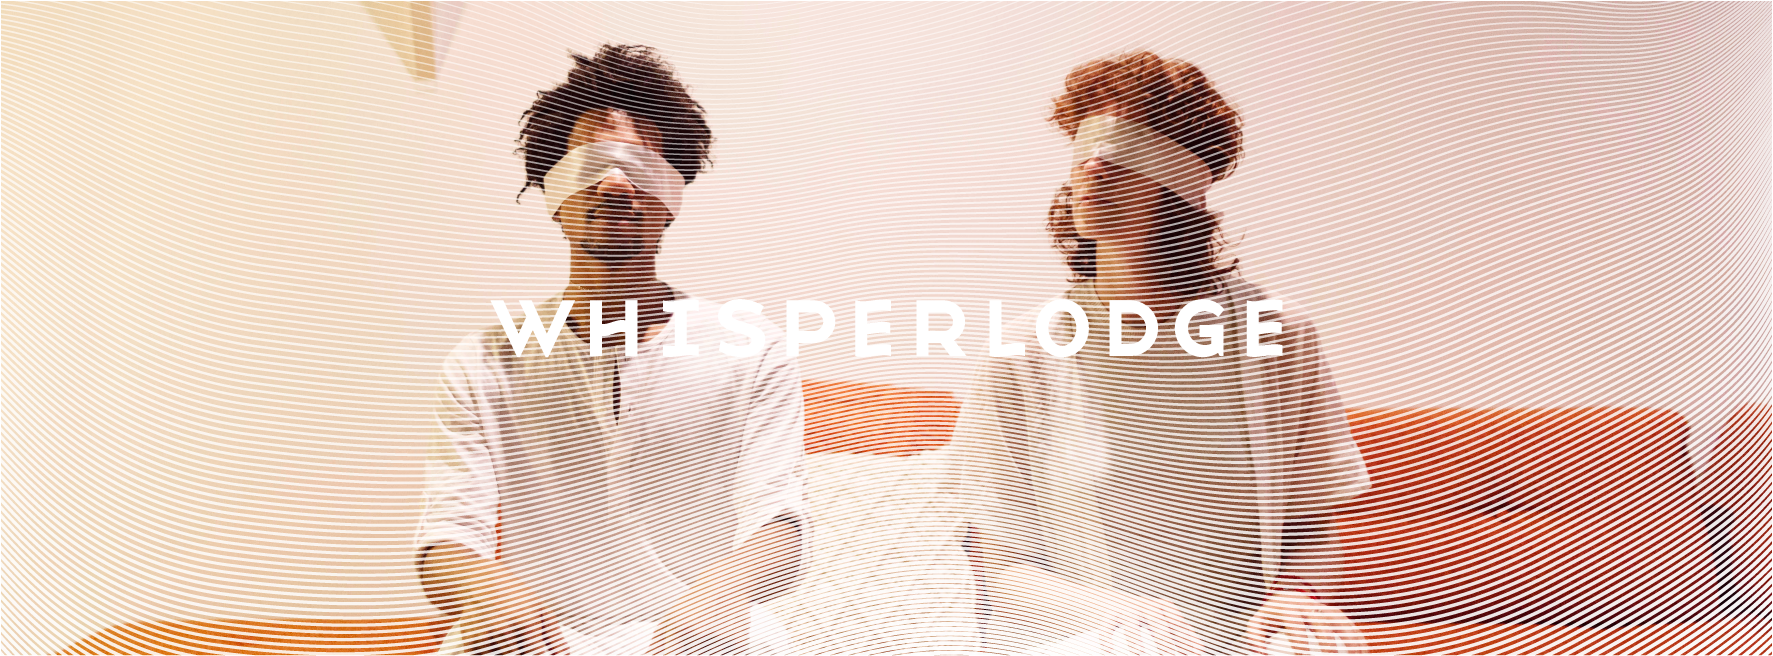 Two blindfolded people sit serenely on a modernist couch. The Whisperlodge logo floats in the middle while a white moiré pattern undulates across the photo.